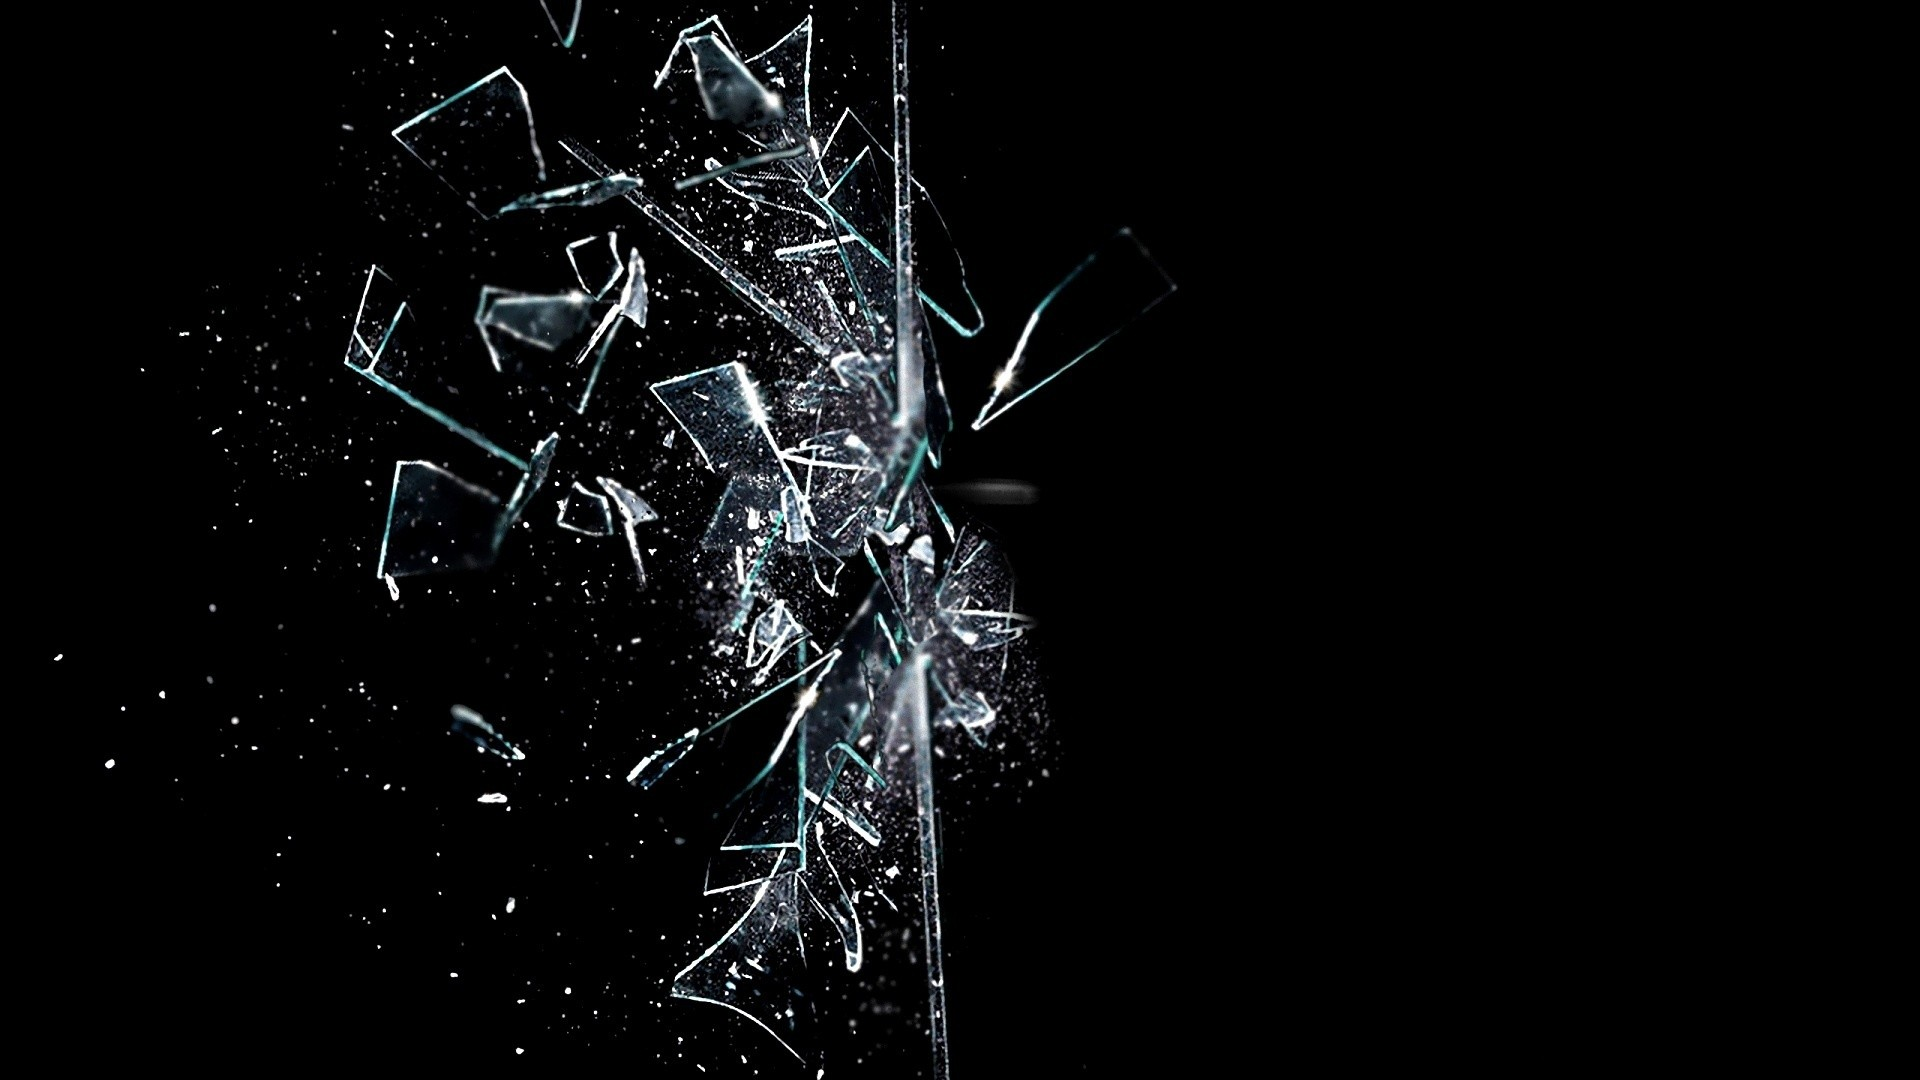 Cool Broken Glass Wallpaper